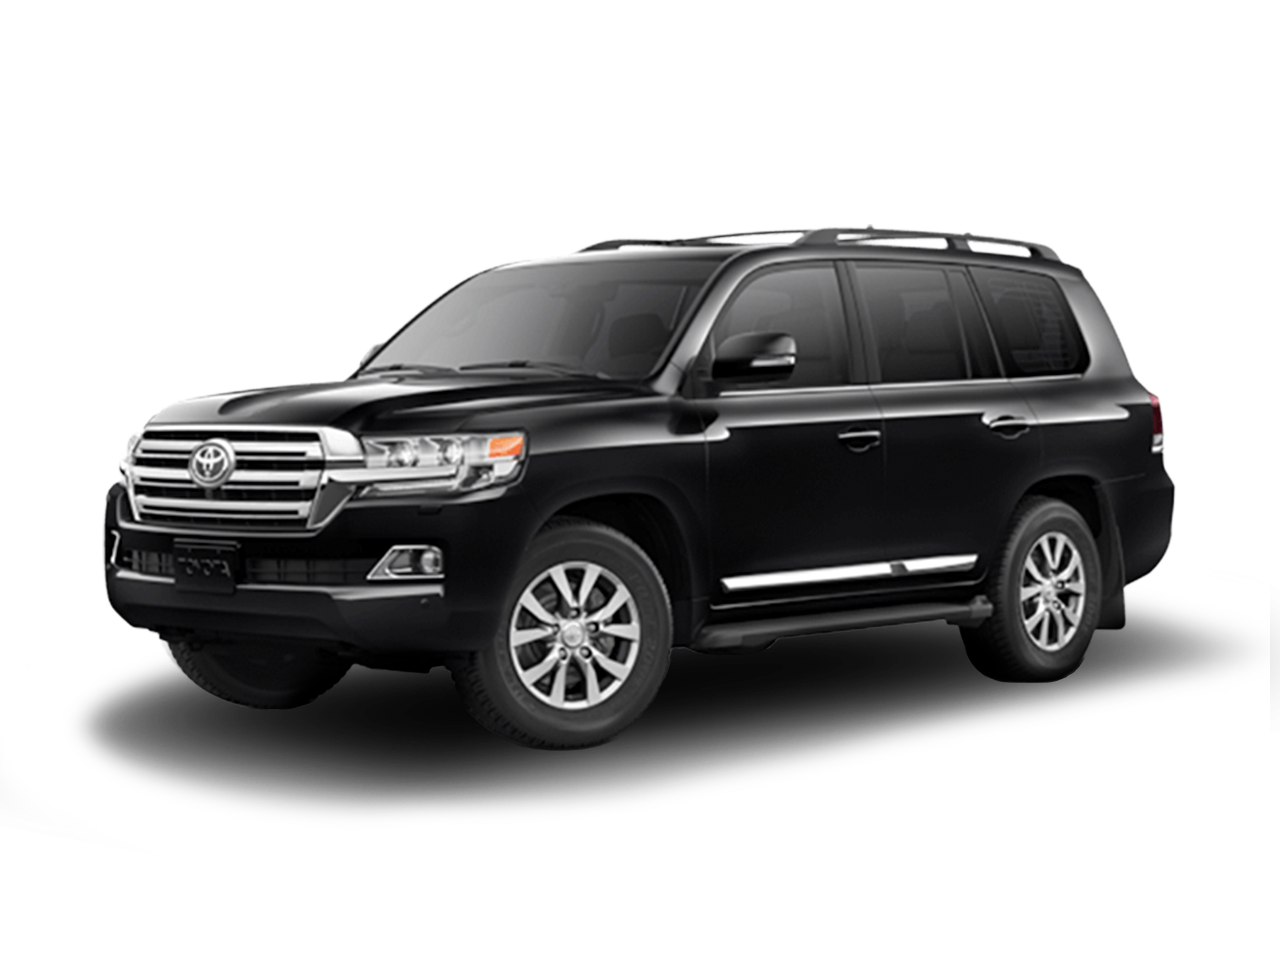 2017 Toyota Land Cruiser At Roseville Toyota Serving